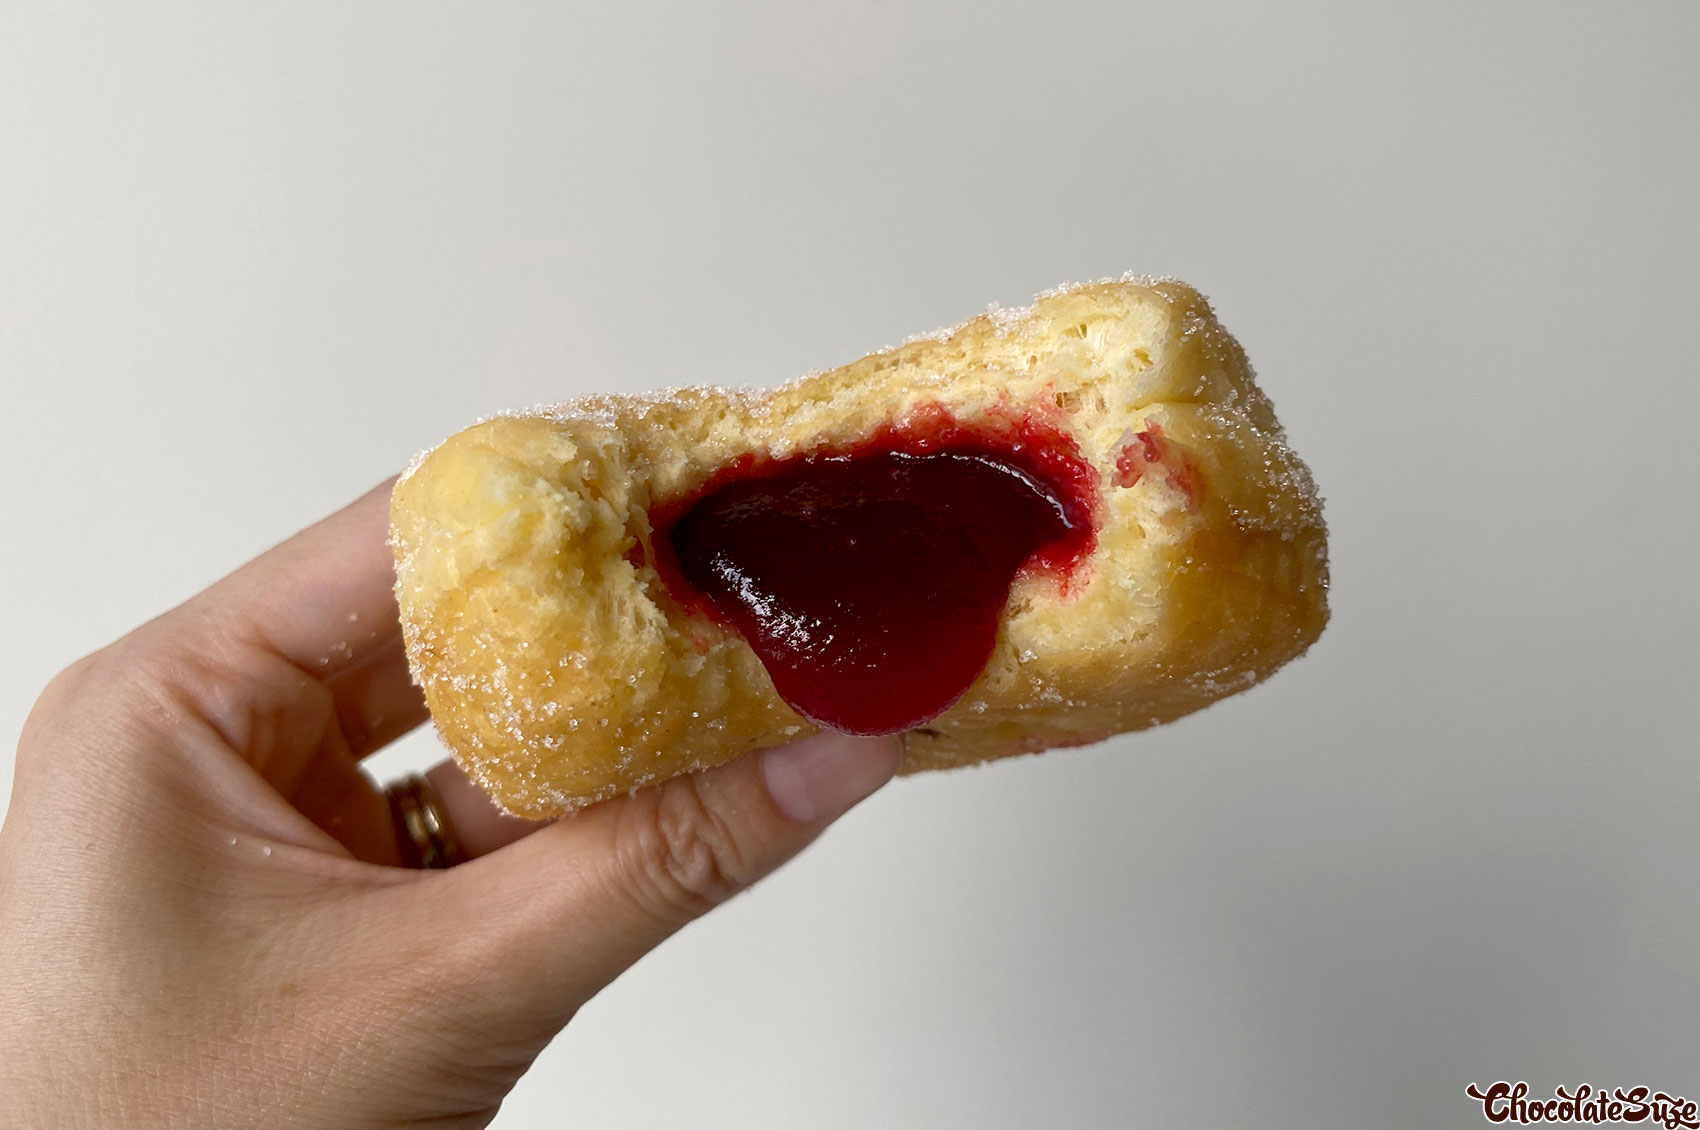 Jam donut at L.A Donuts, Beverly Hills